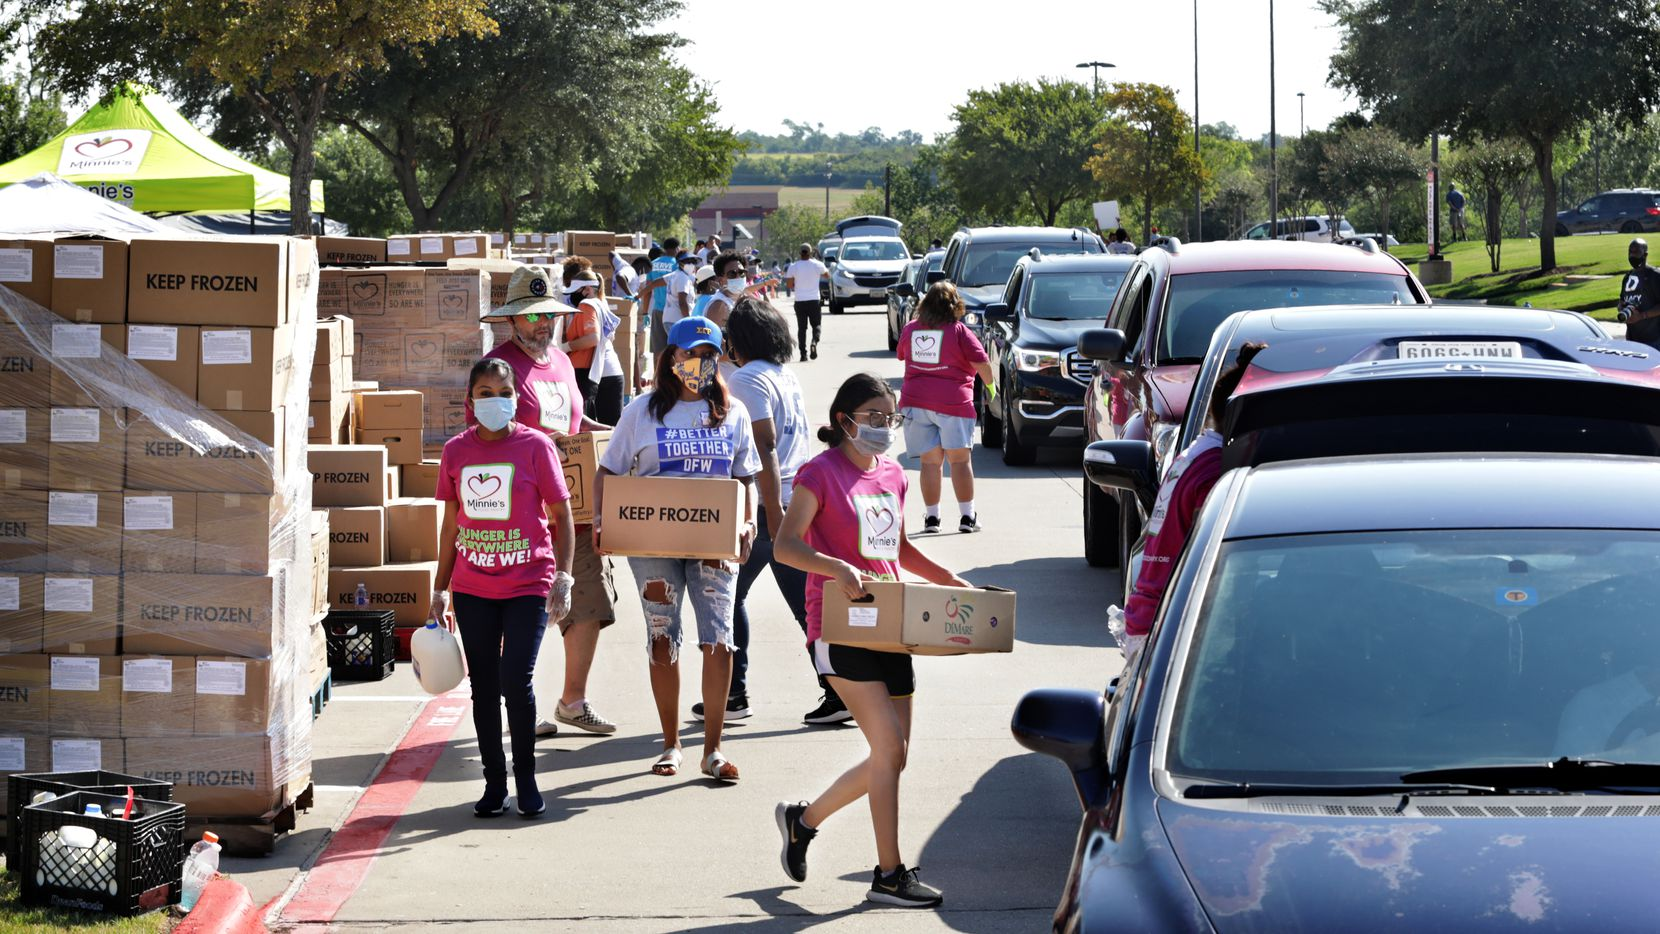 Volunteers with Minnie's Food Pantry distribute free food at One Community Church in Plano, TX, on Aug. 22, 2020. A similar food distribution will take place at at Lone Star Park in Grapevine this Friday.